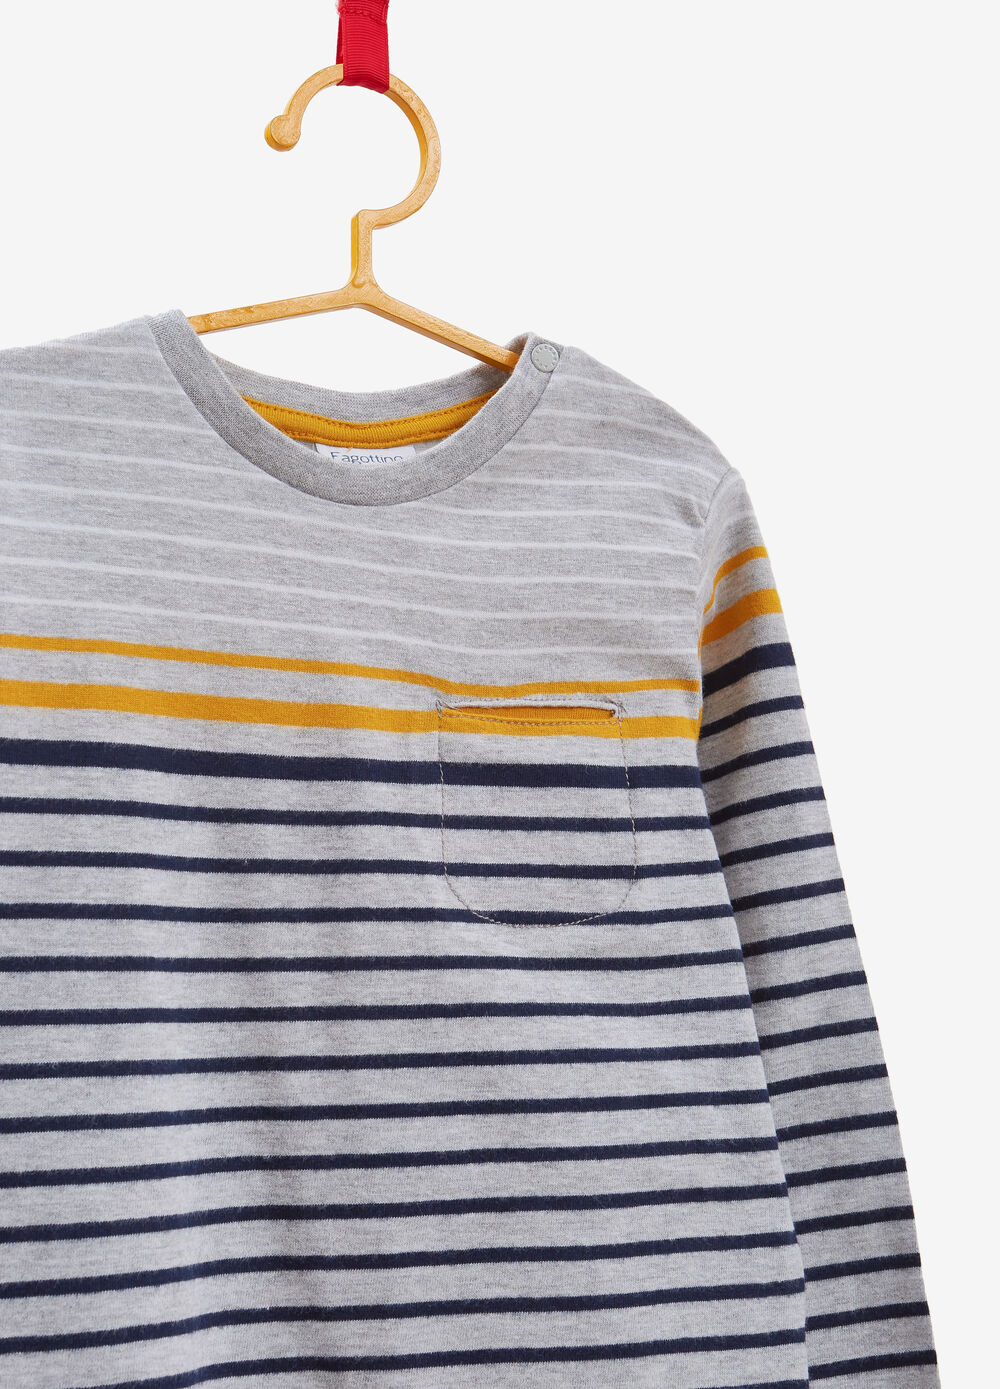 Viscose and cotton T-shirt with striped pattern